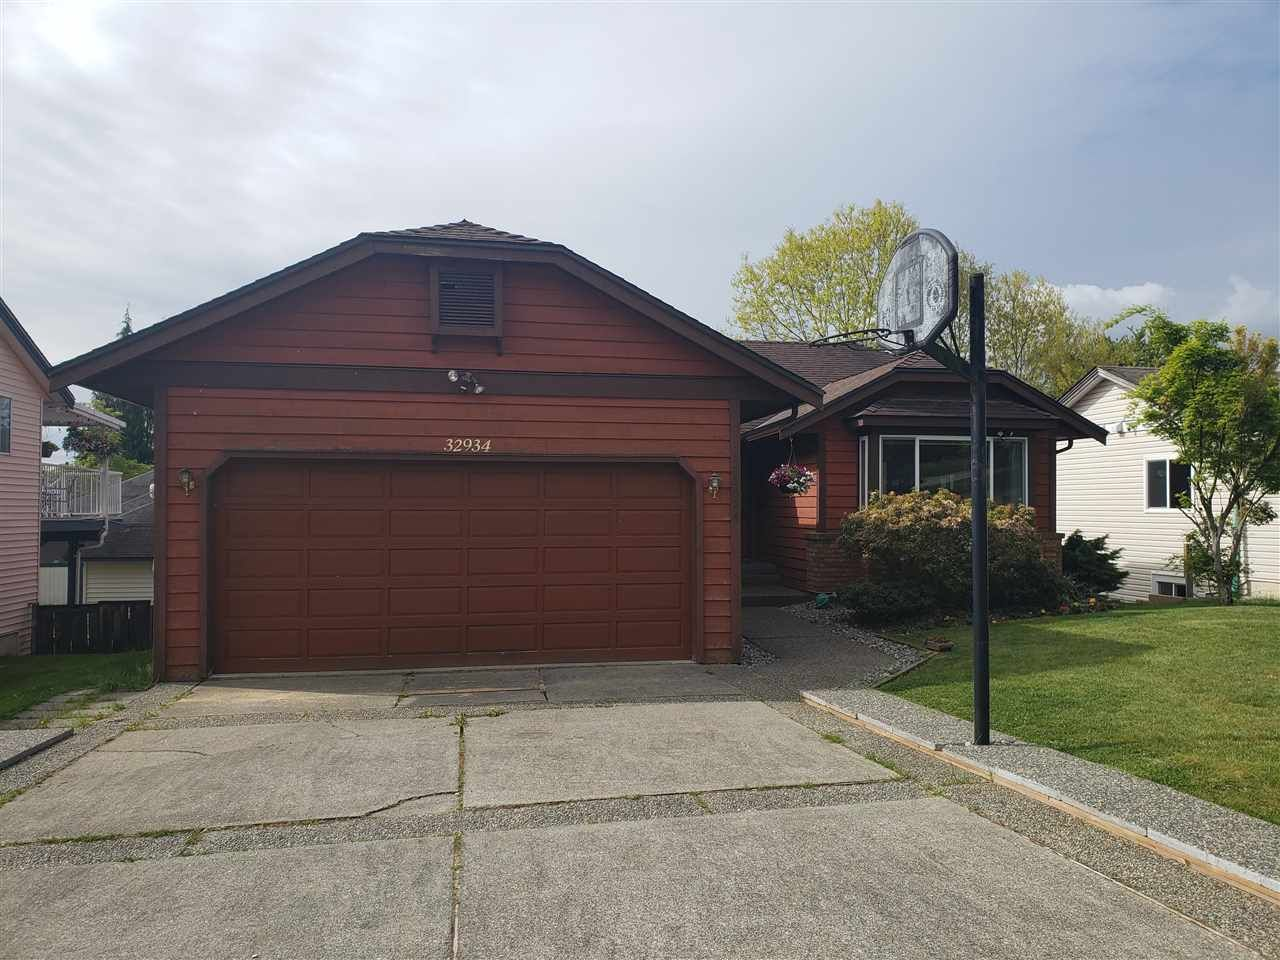 Main Photo: 32934 ARBUTUS AVENUE in Mission: Mission BC House for sale : MLS®# R2576358